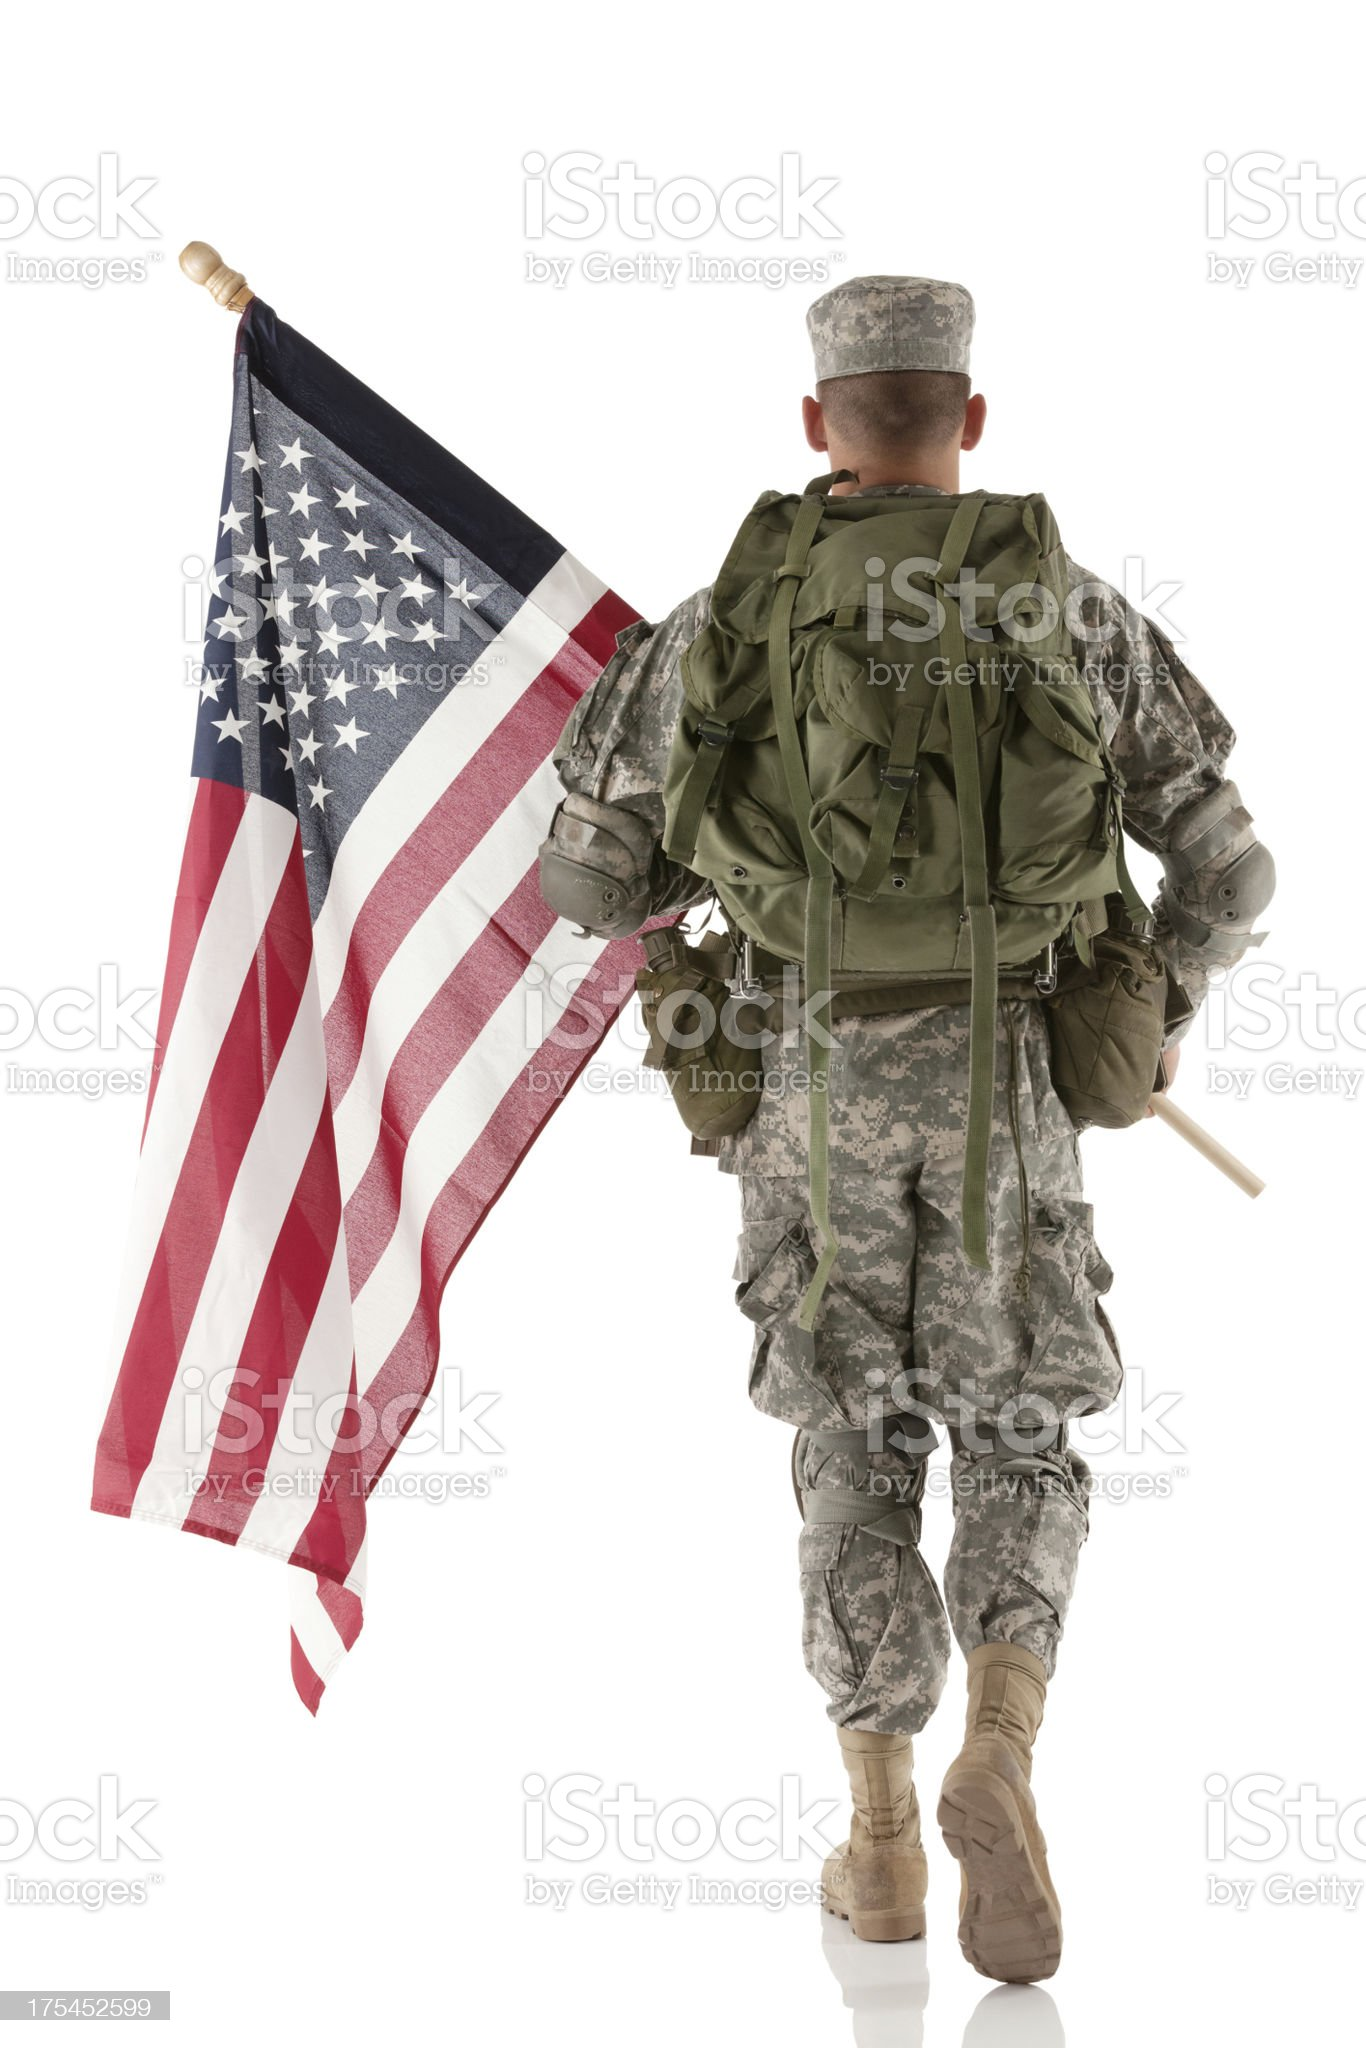 Army man carrying an American flag royalty-free stock photo